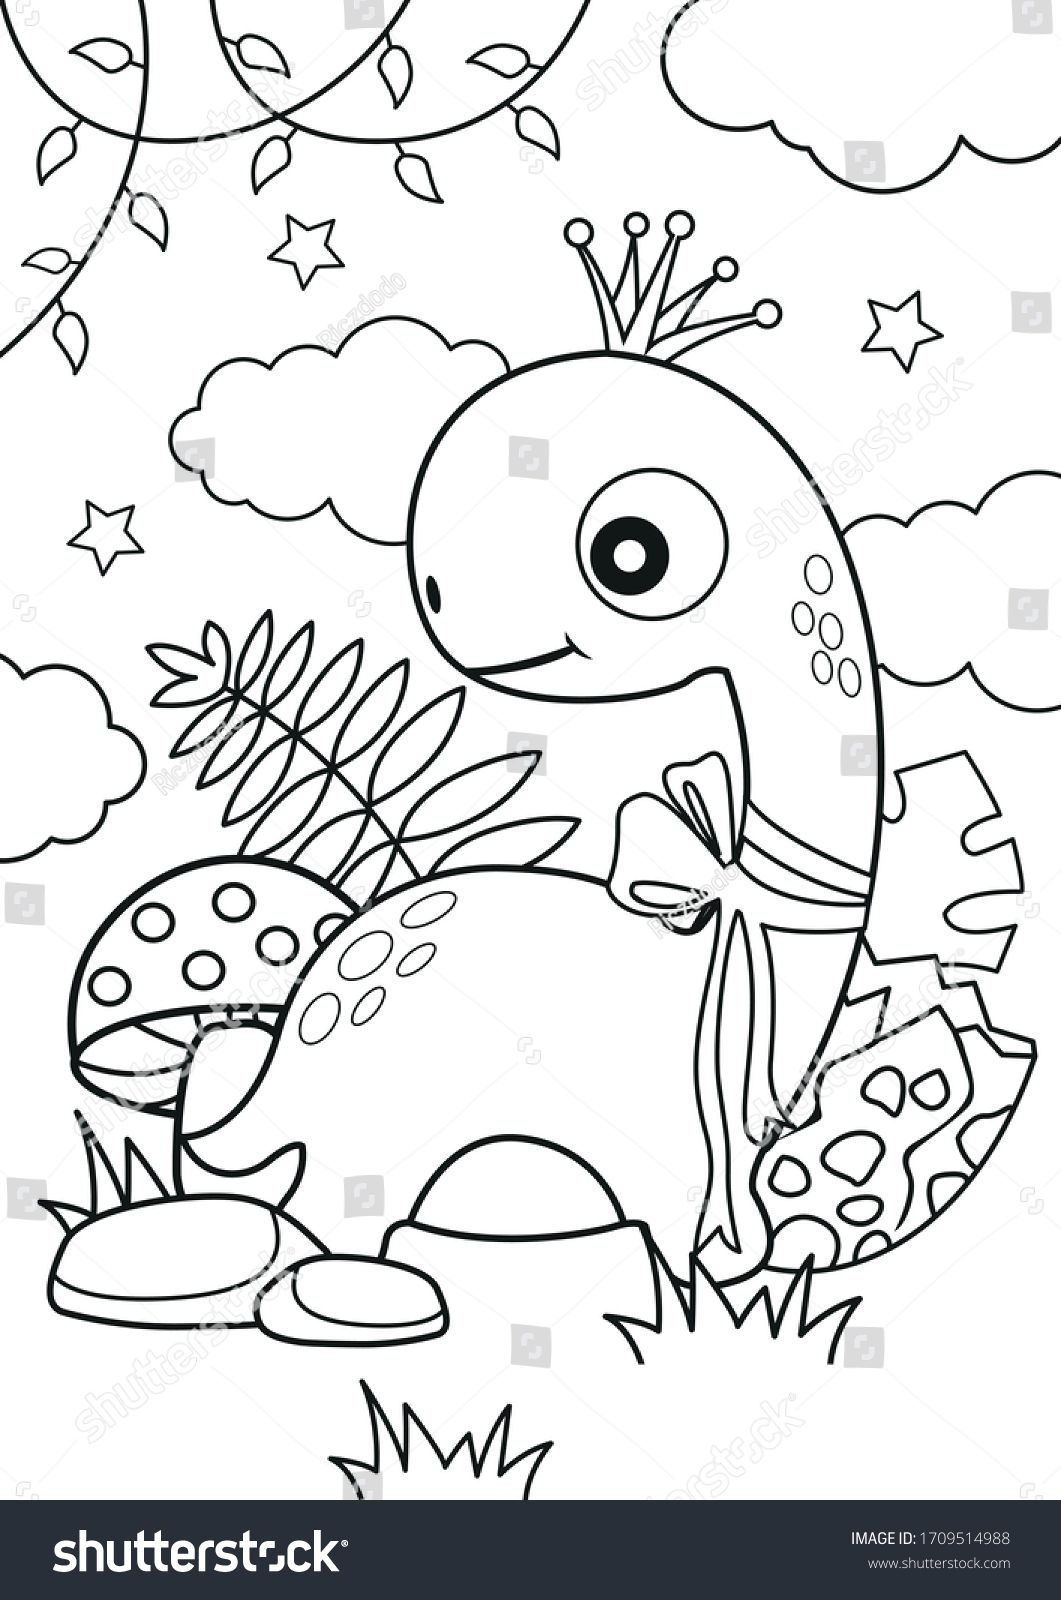 Shutterstock Illustration Art Vector Template Coloring Colouring Page Book Drawing Color Kids Child Activity Pencil Dinosaur Girl Cute Jungle Forest